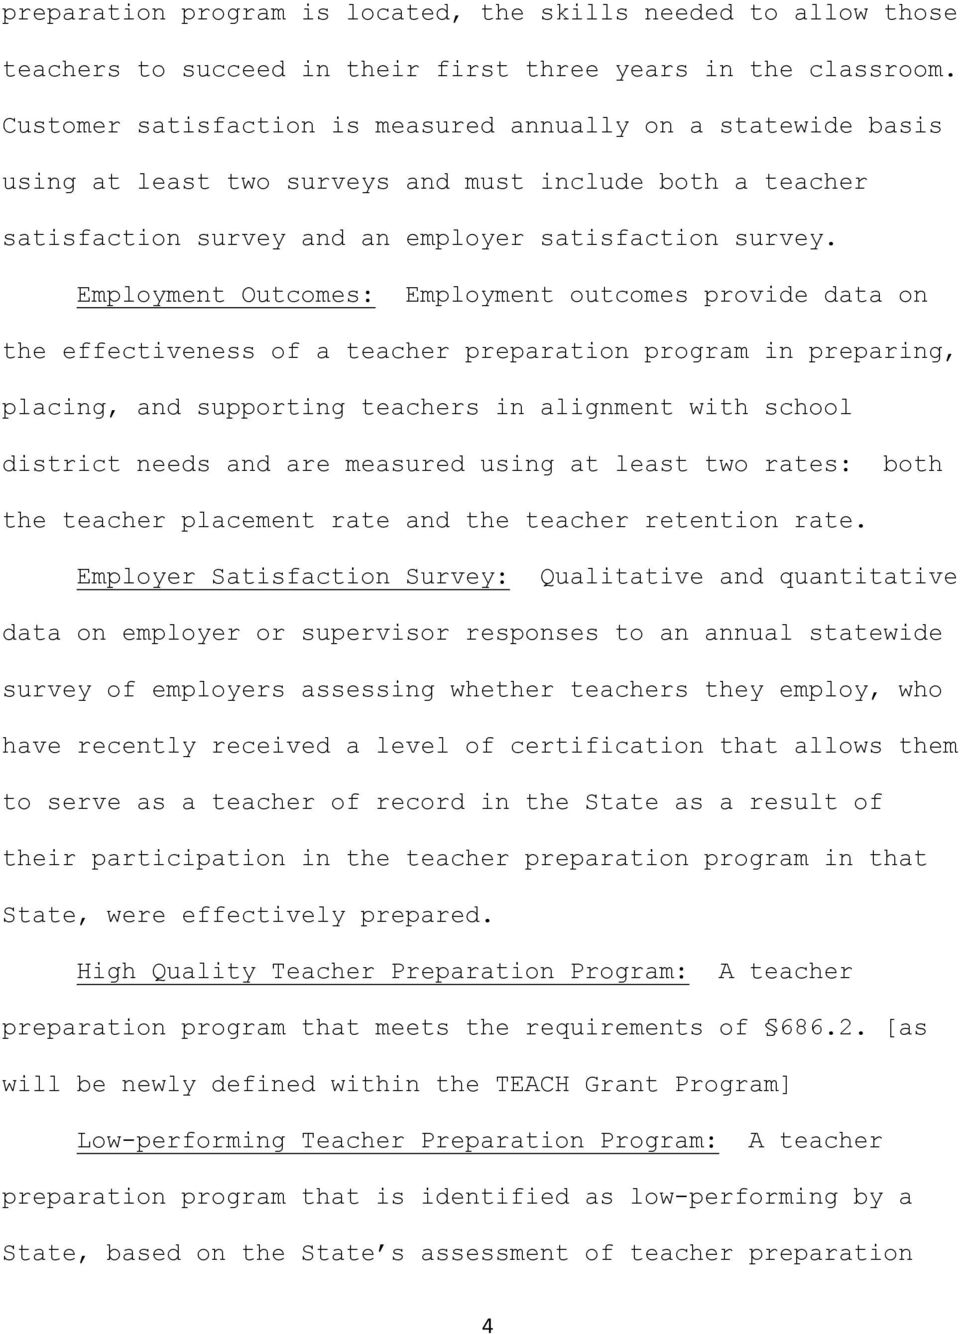 Employment Outcomes: Employment outcomes provide data on the effectiveness of a teacher preparation program in preparing, placing, and supporting teachers in alignment with school district needs and